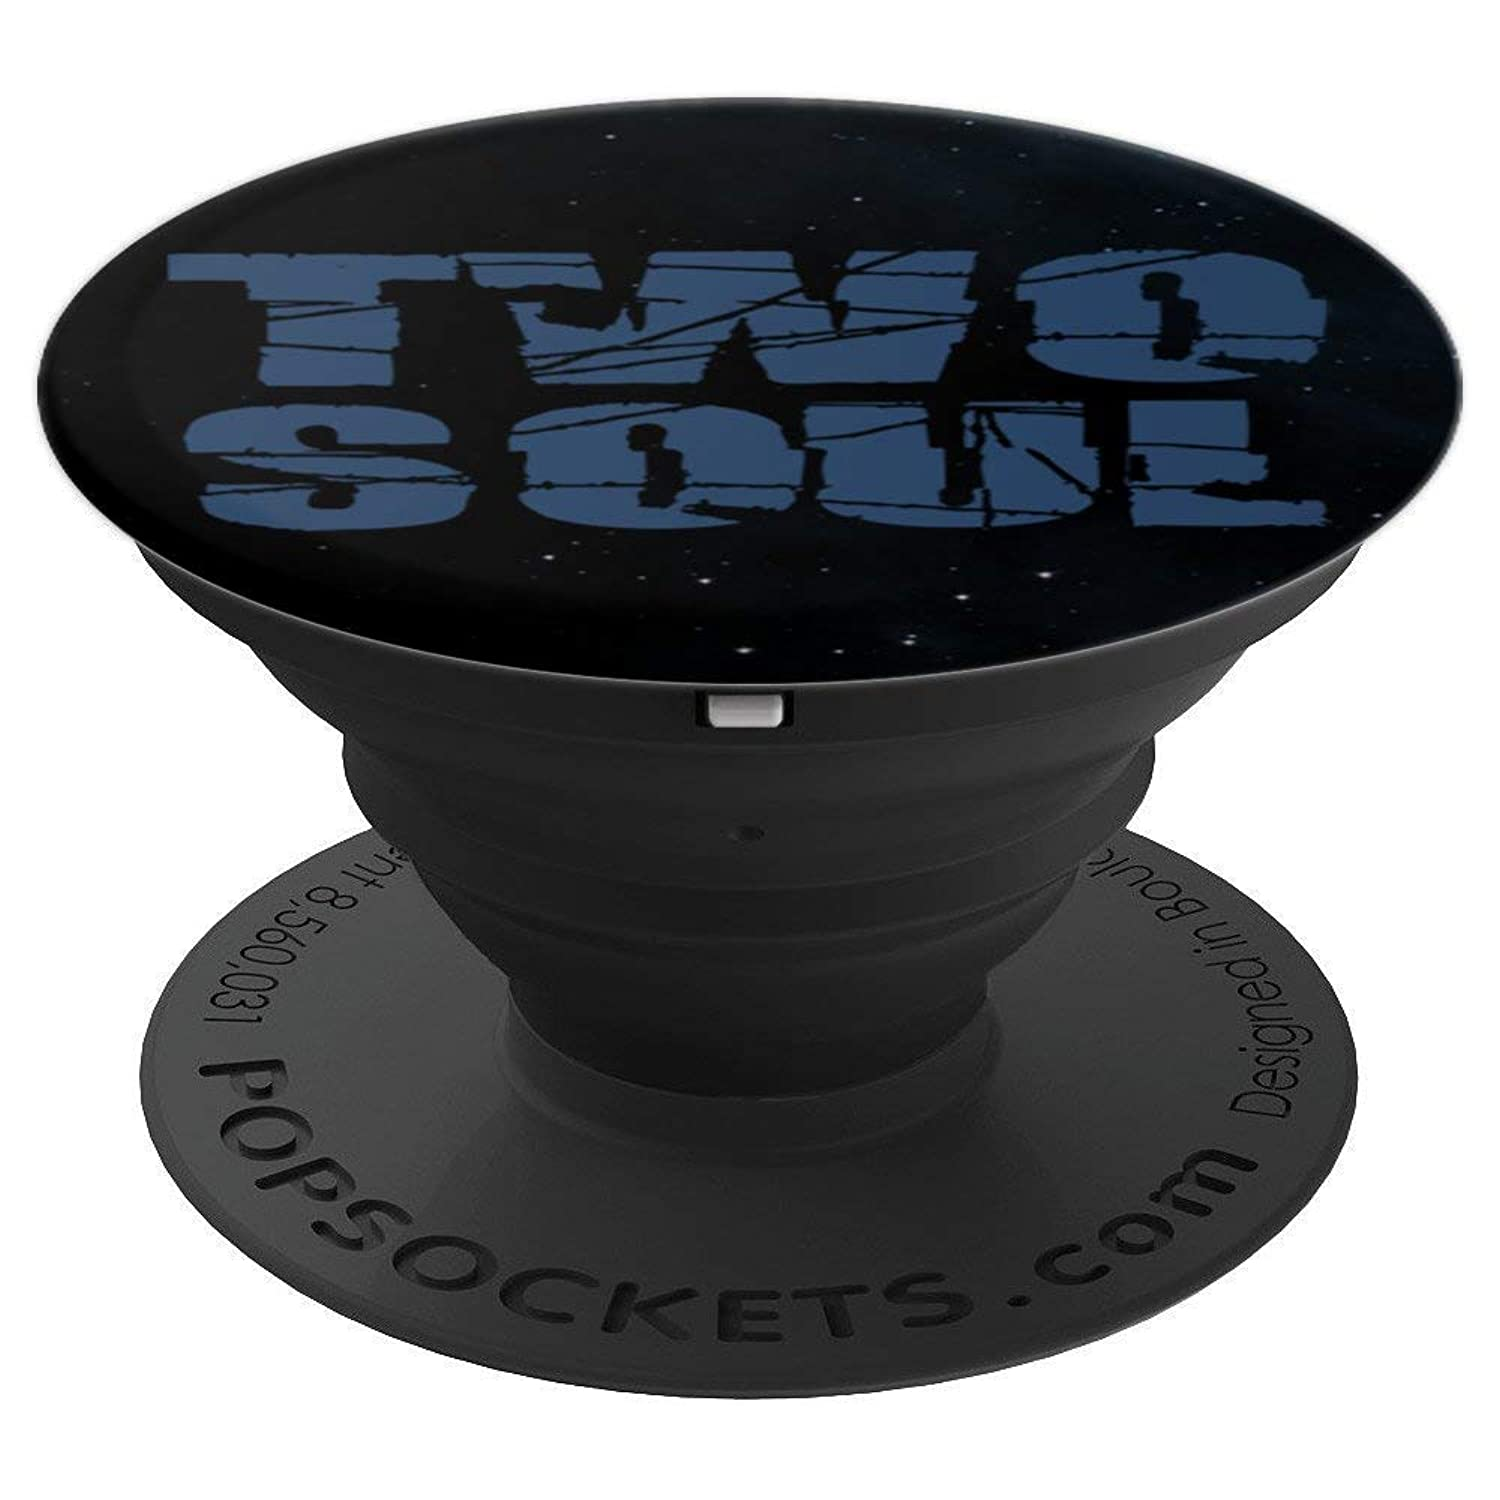 Tow Soul Shirt Unisex Gift PopSockets Grip and Stand for Phones and Tablets